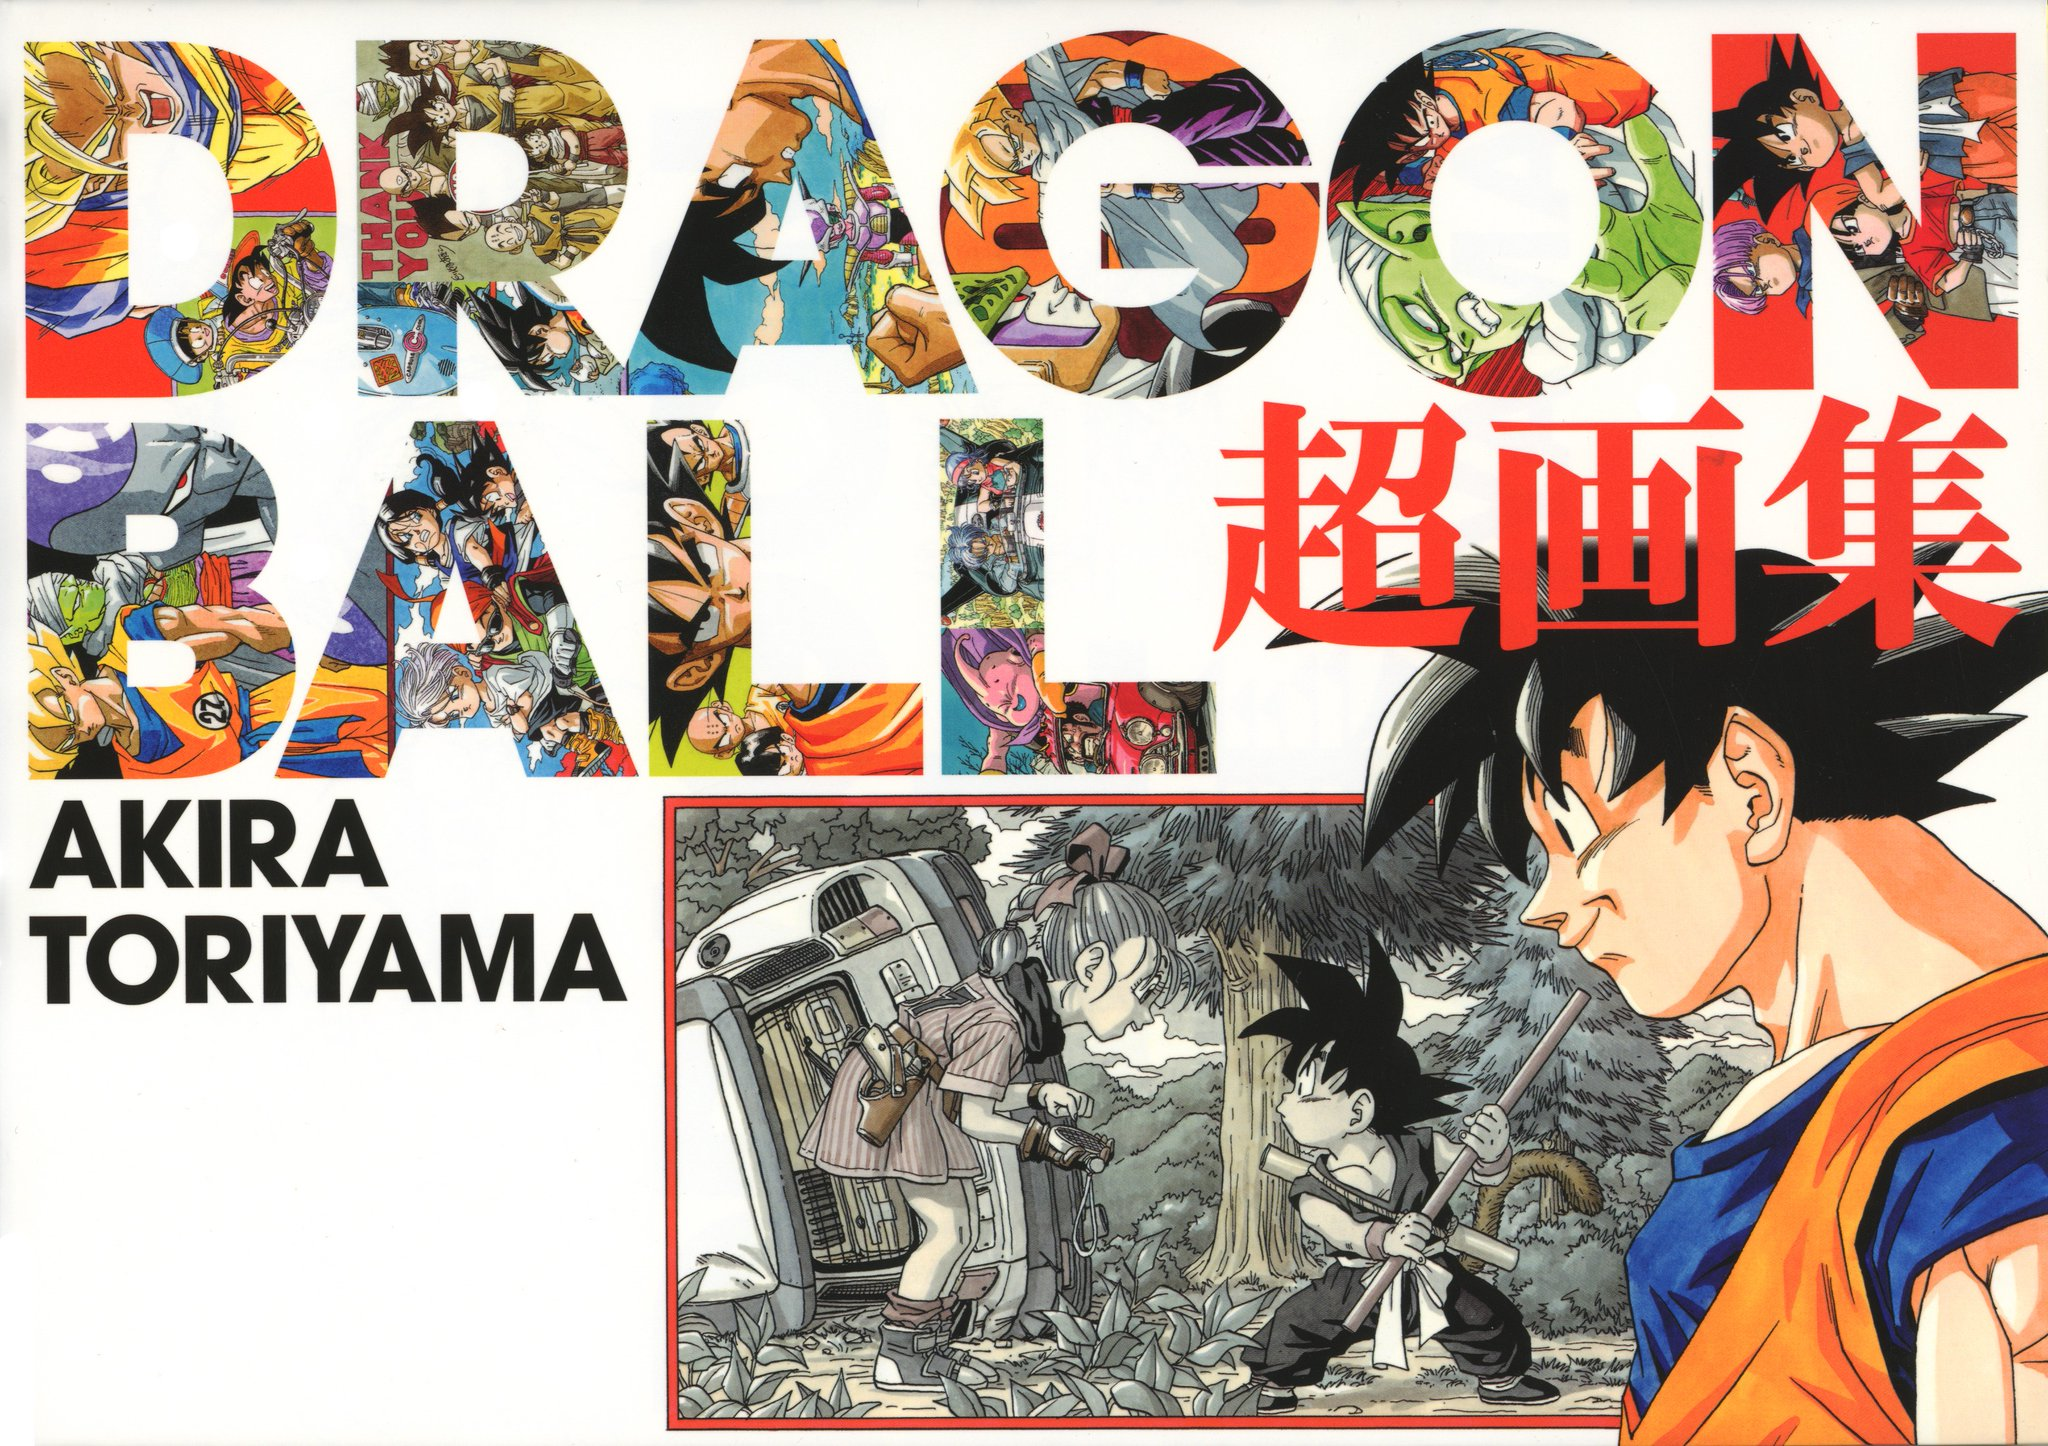 Press Release: VIZ Media Acquires DRAGON BALL: A VISUAL HISTORY!